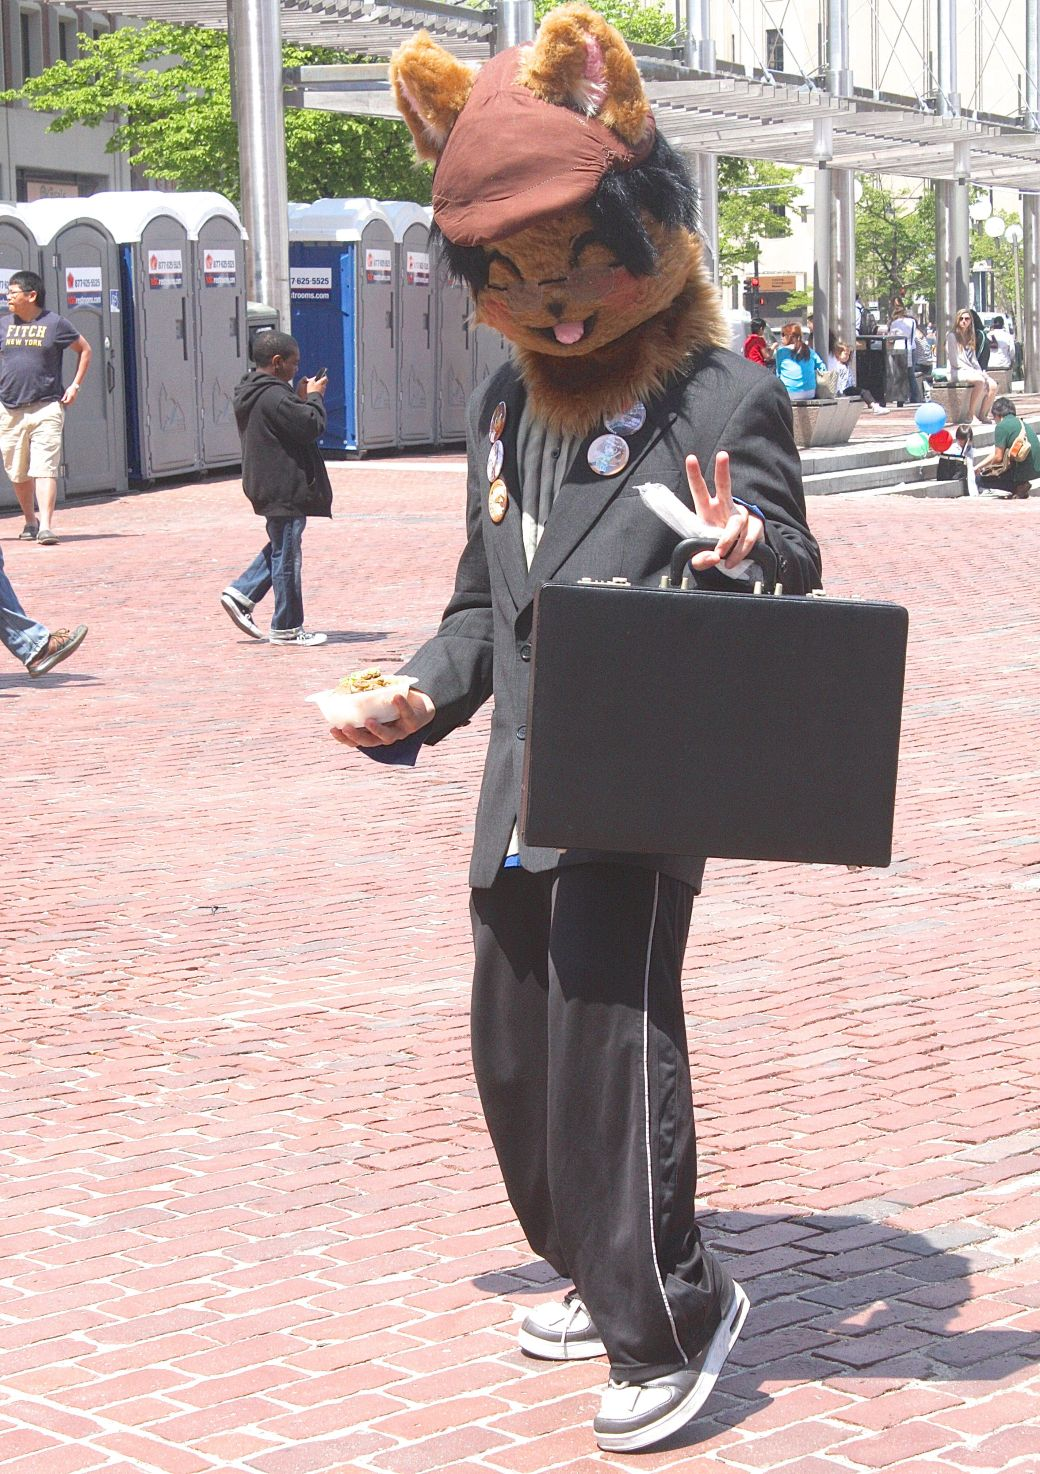 boston government center japanese festival may 19 2013 man in cat mask